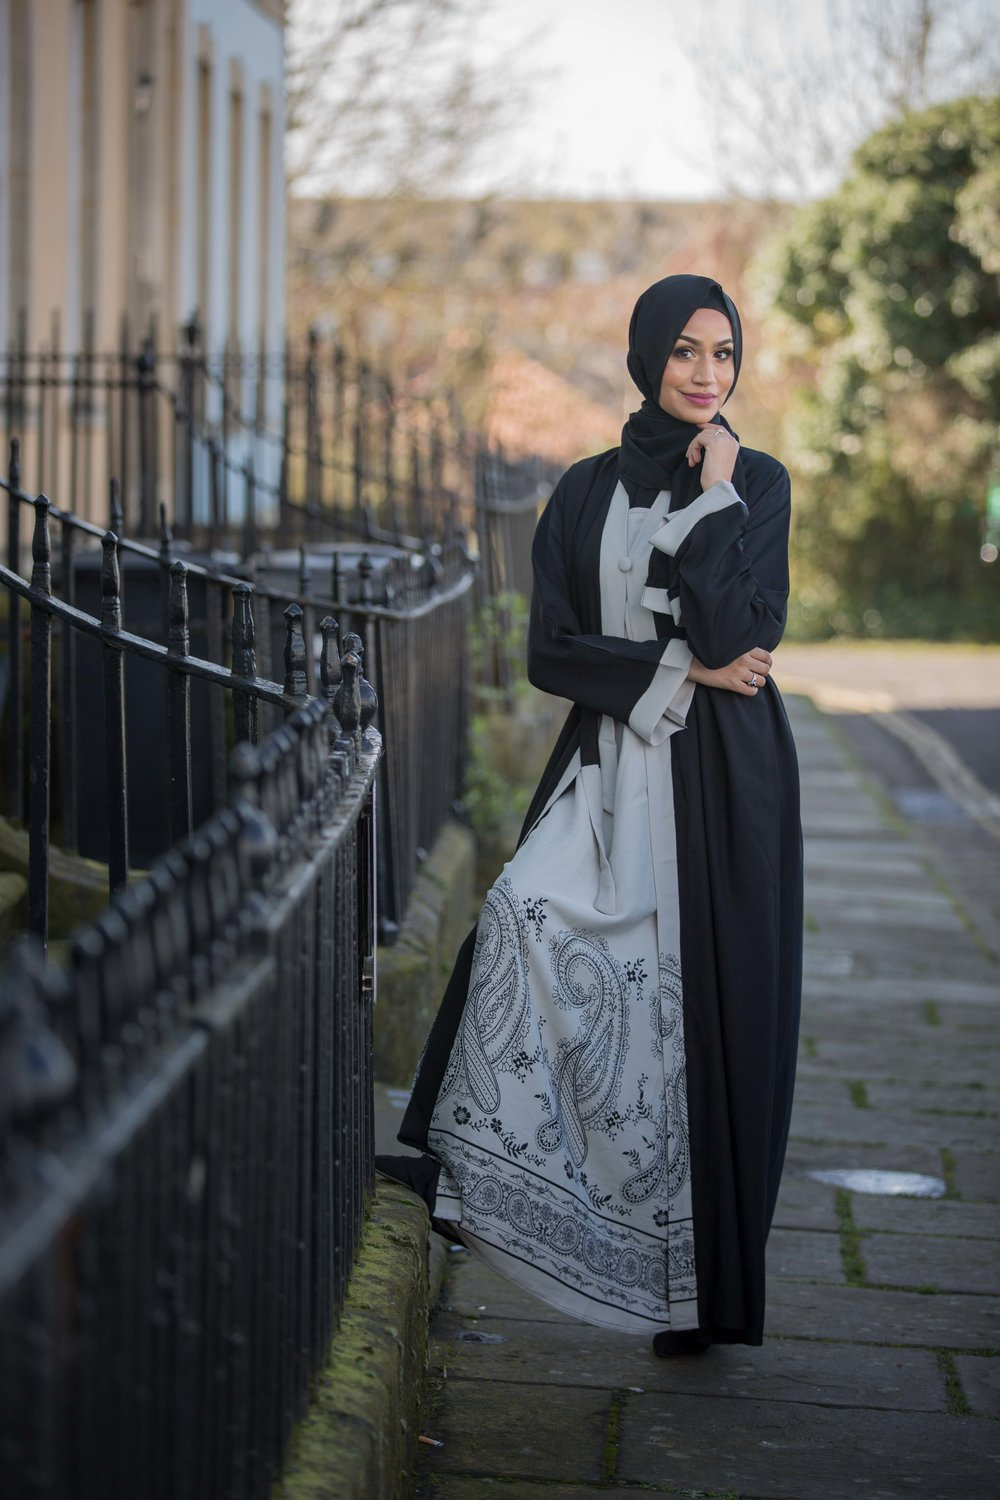 modest-street-aisha-rahman-fashion-photography-london-bristol-natalia-smith-photography-abaya-6.jpg